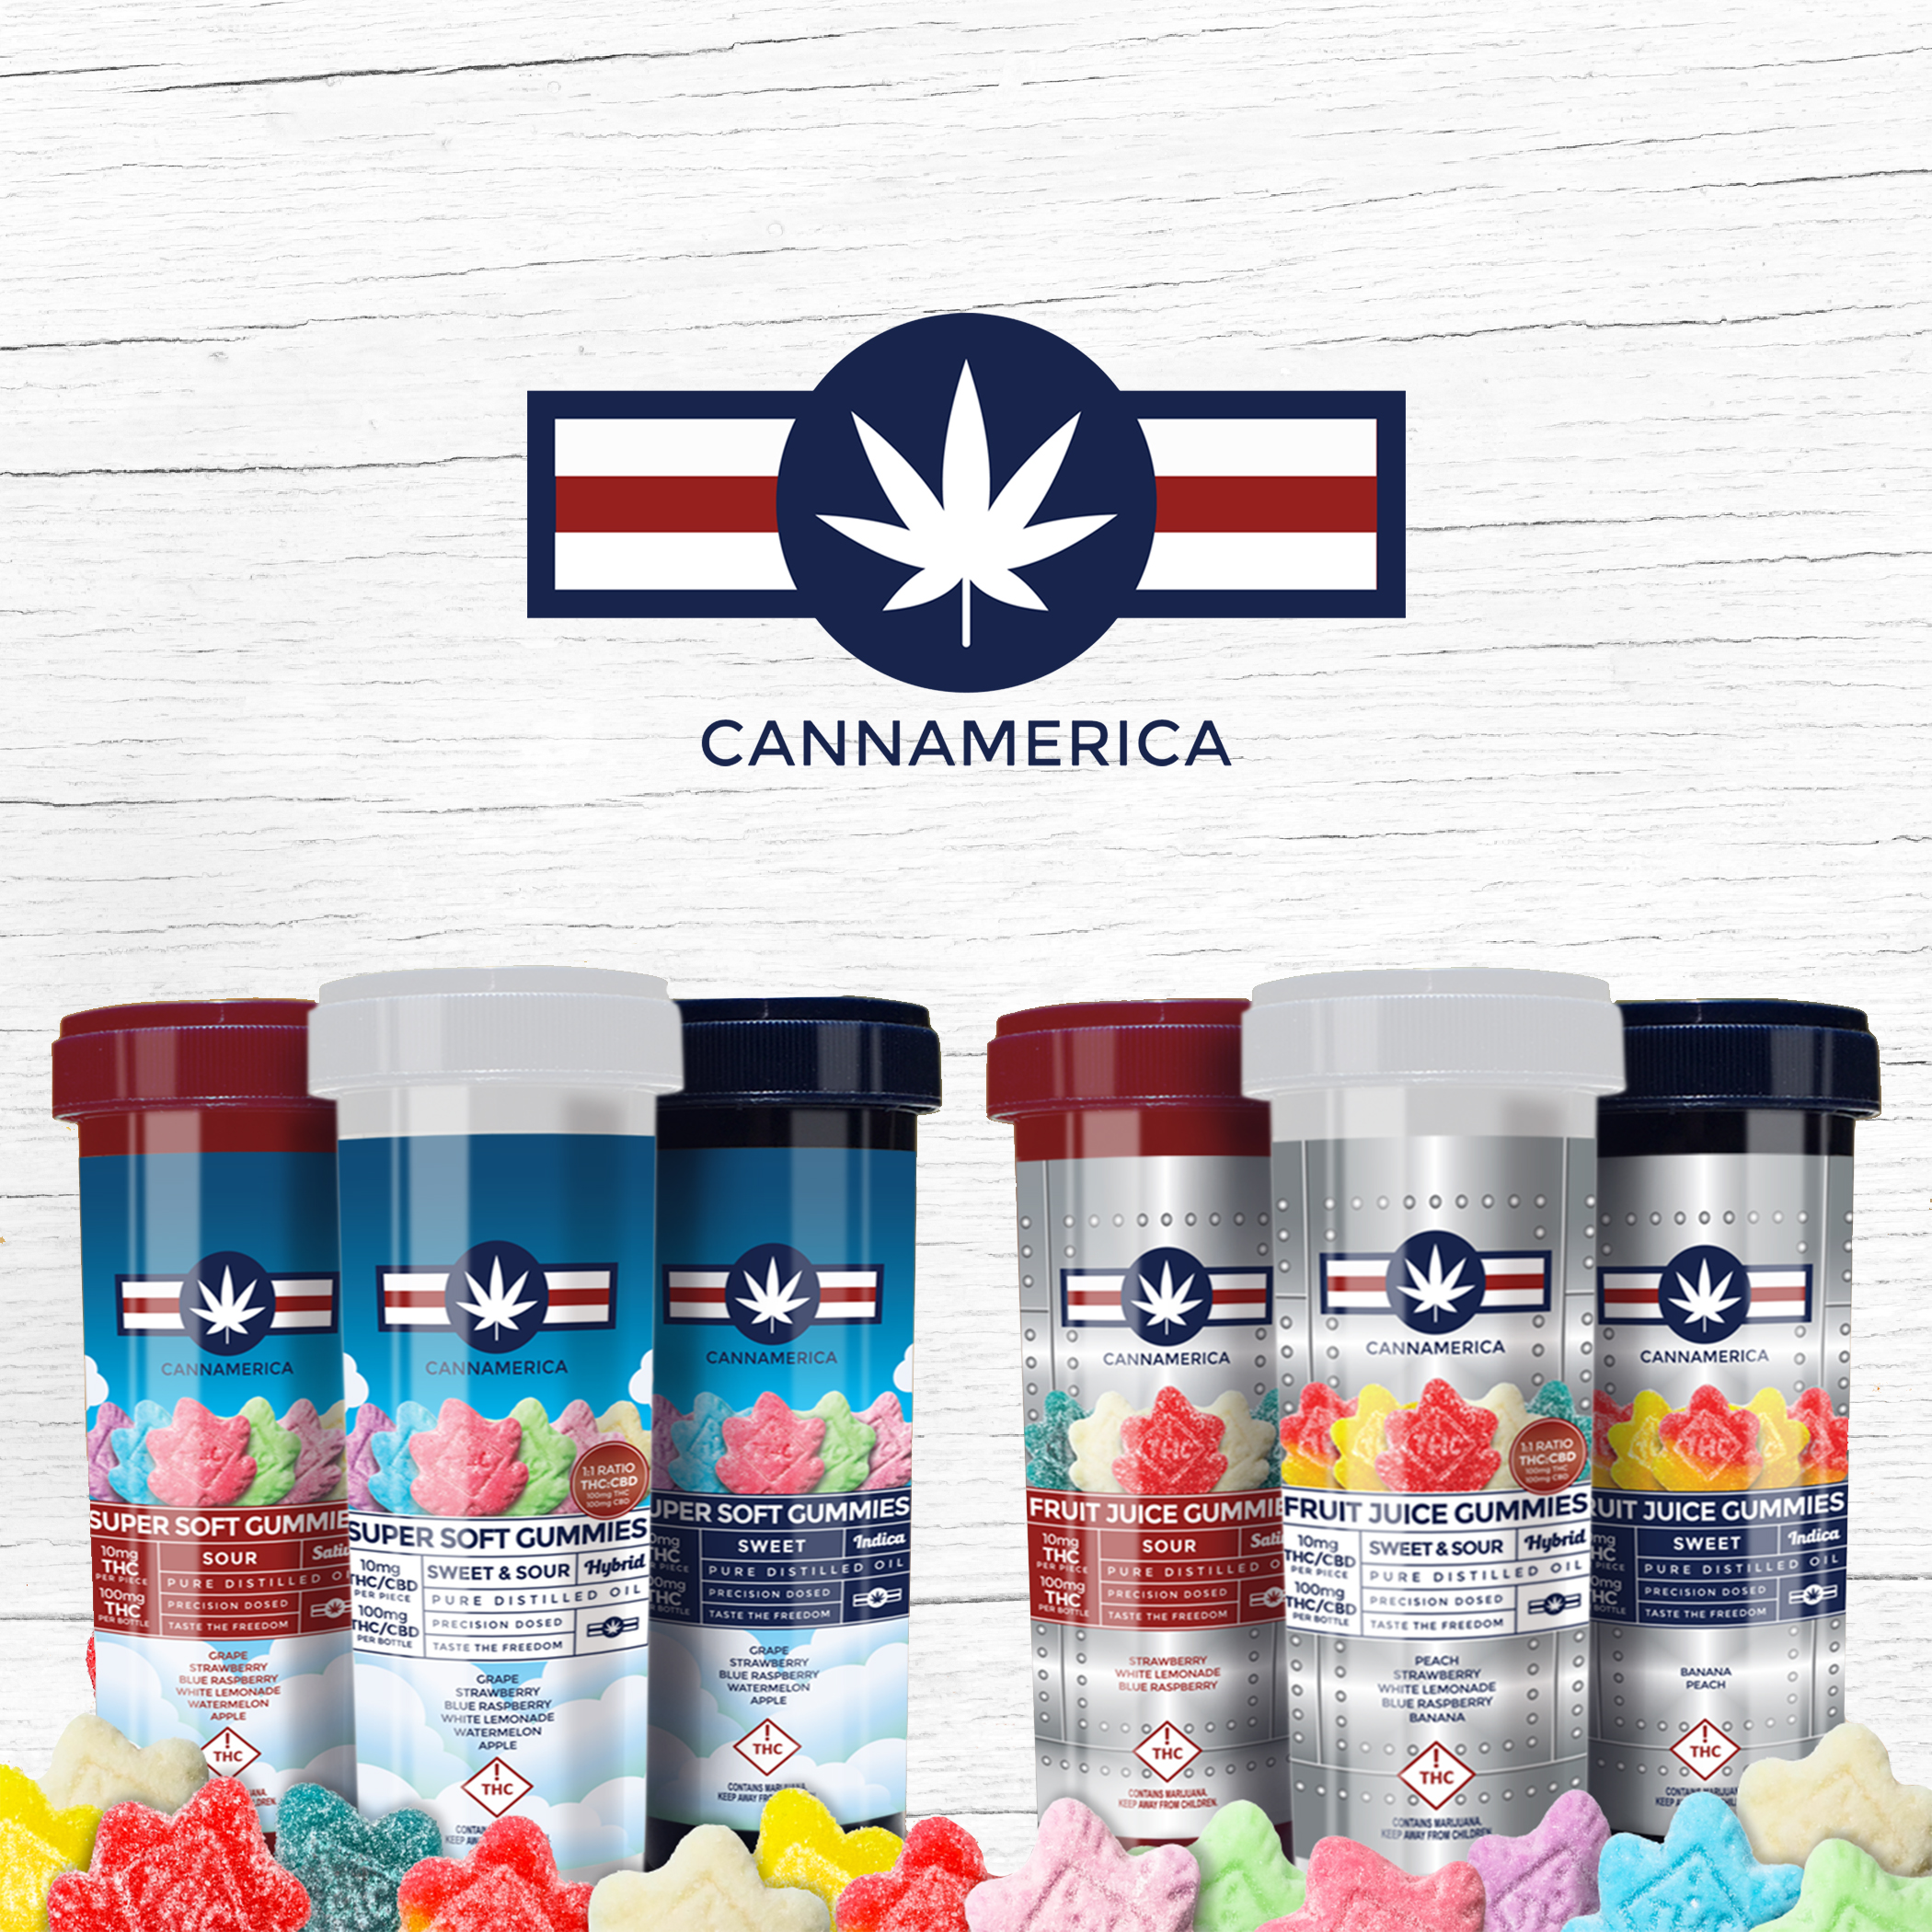 CannAmerica Common Shares Debuts on the Canadian Securities Exchange (CSE)